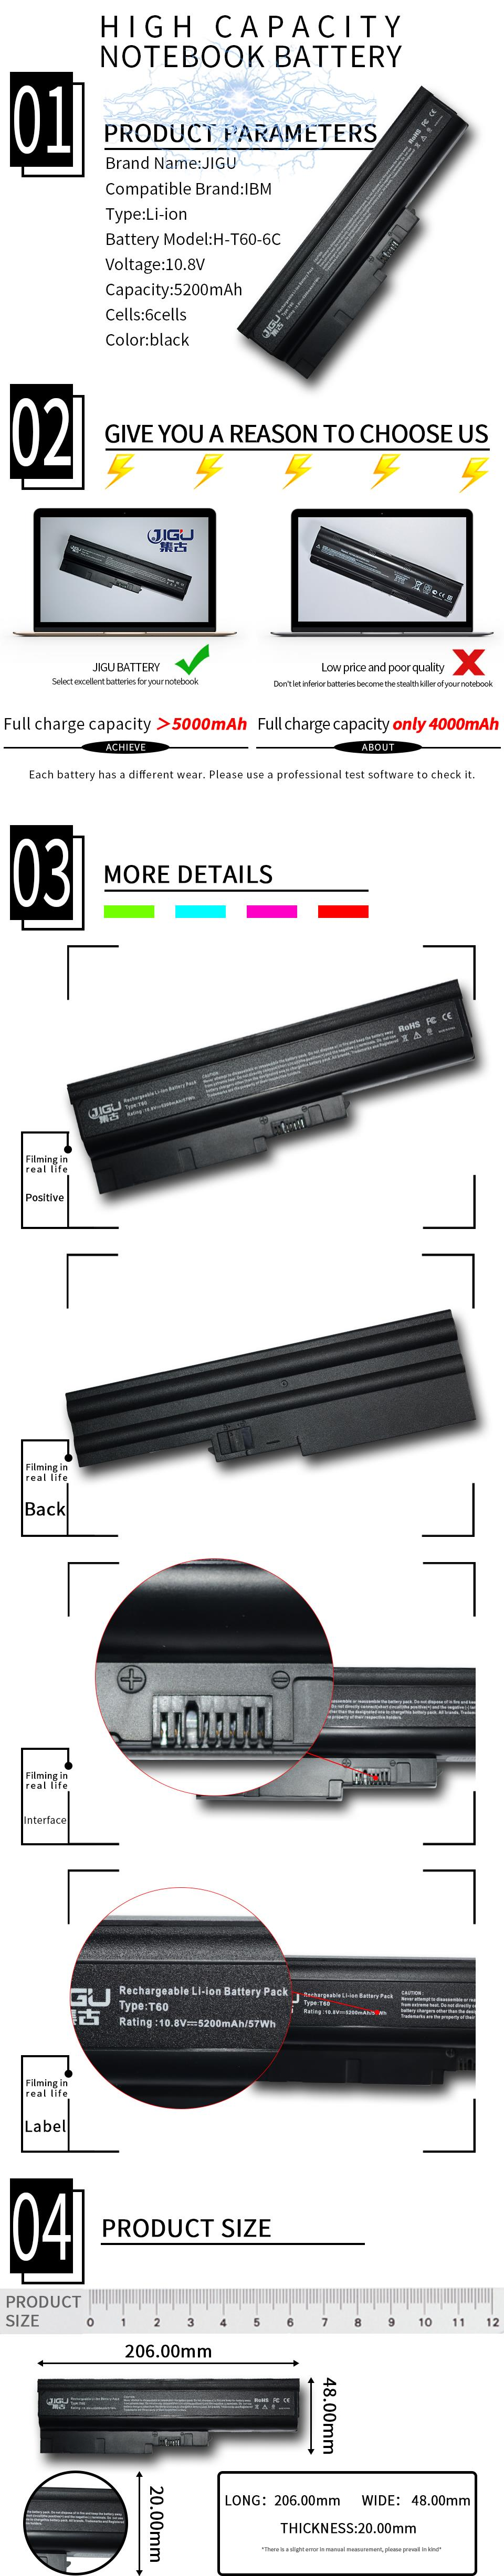 This Laptop Battery can replace the following part numbers for Ibm 40Y6799 ASM 92P1138 ASM 92P1140 ASM 92P1142 FRU 42T4504 FRU 42T4513 FRU 42T5233 FRU